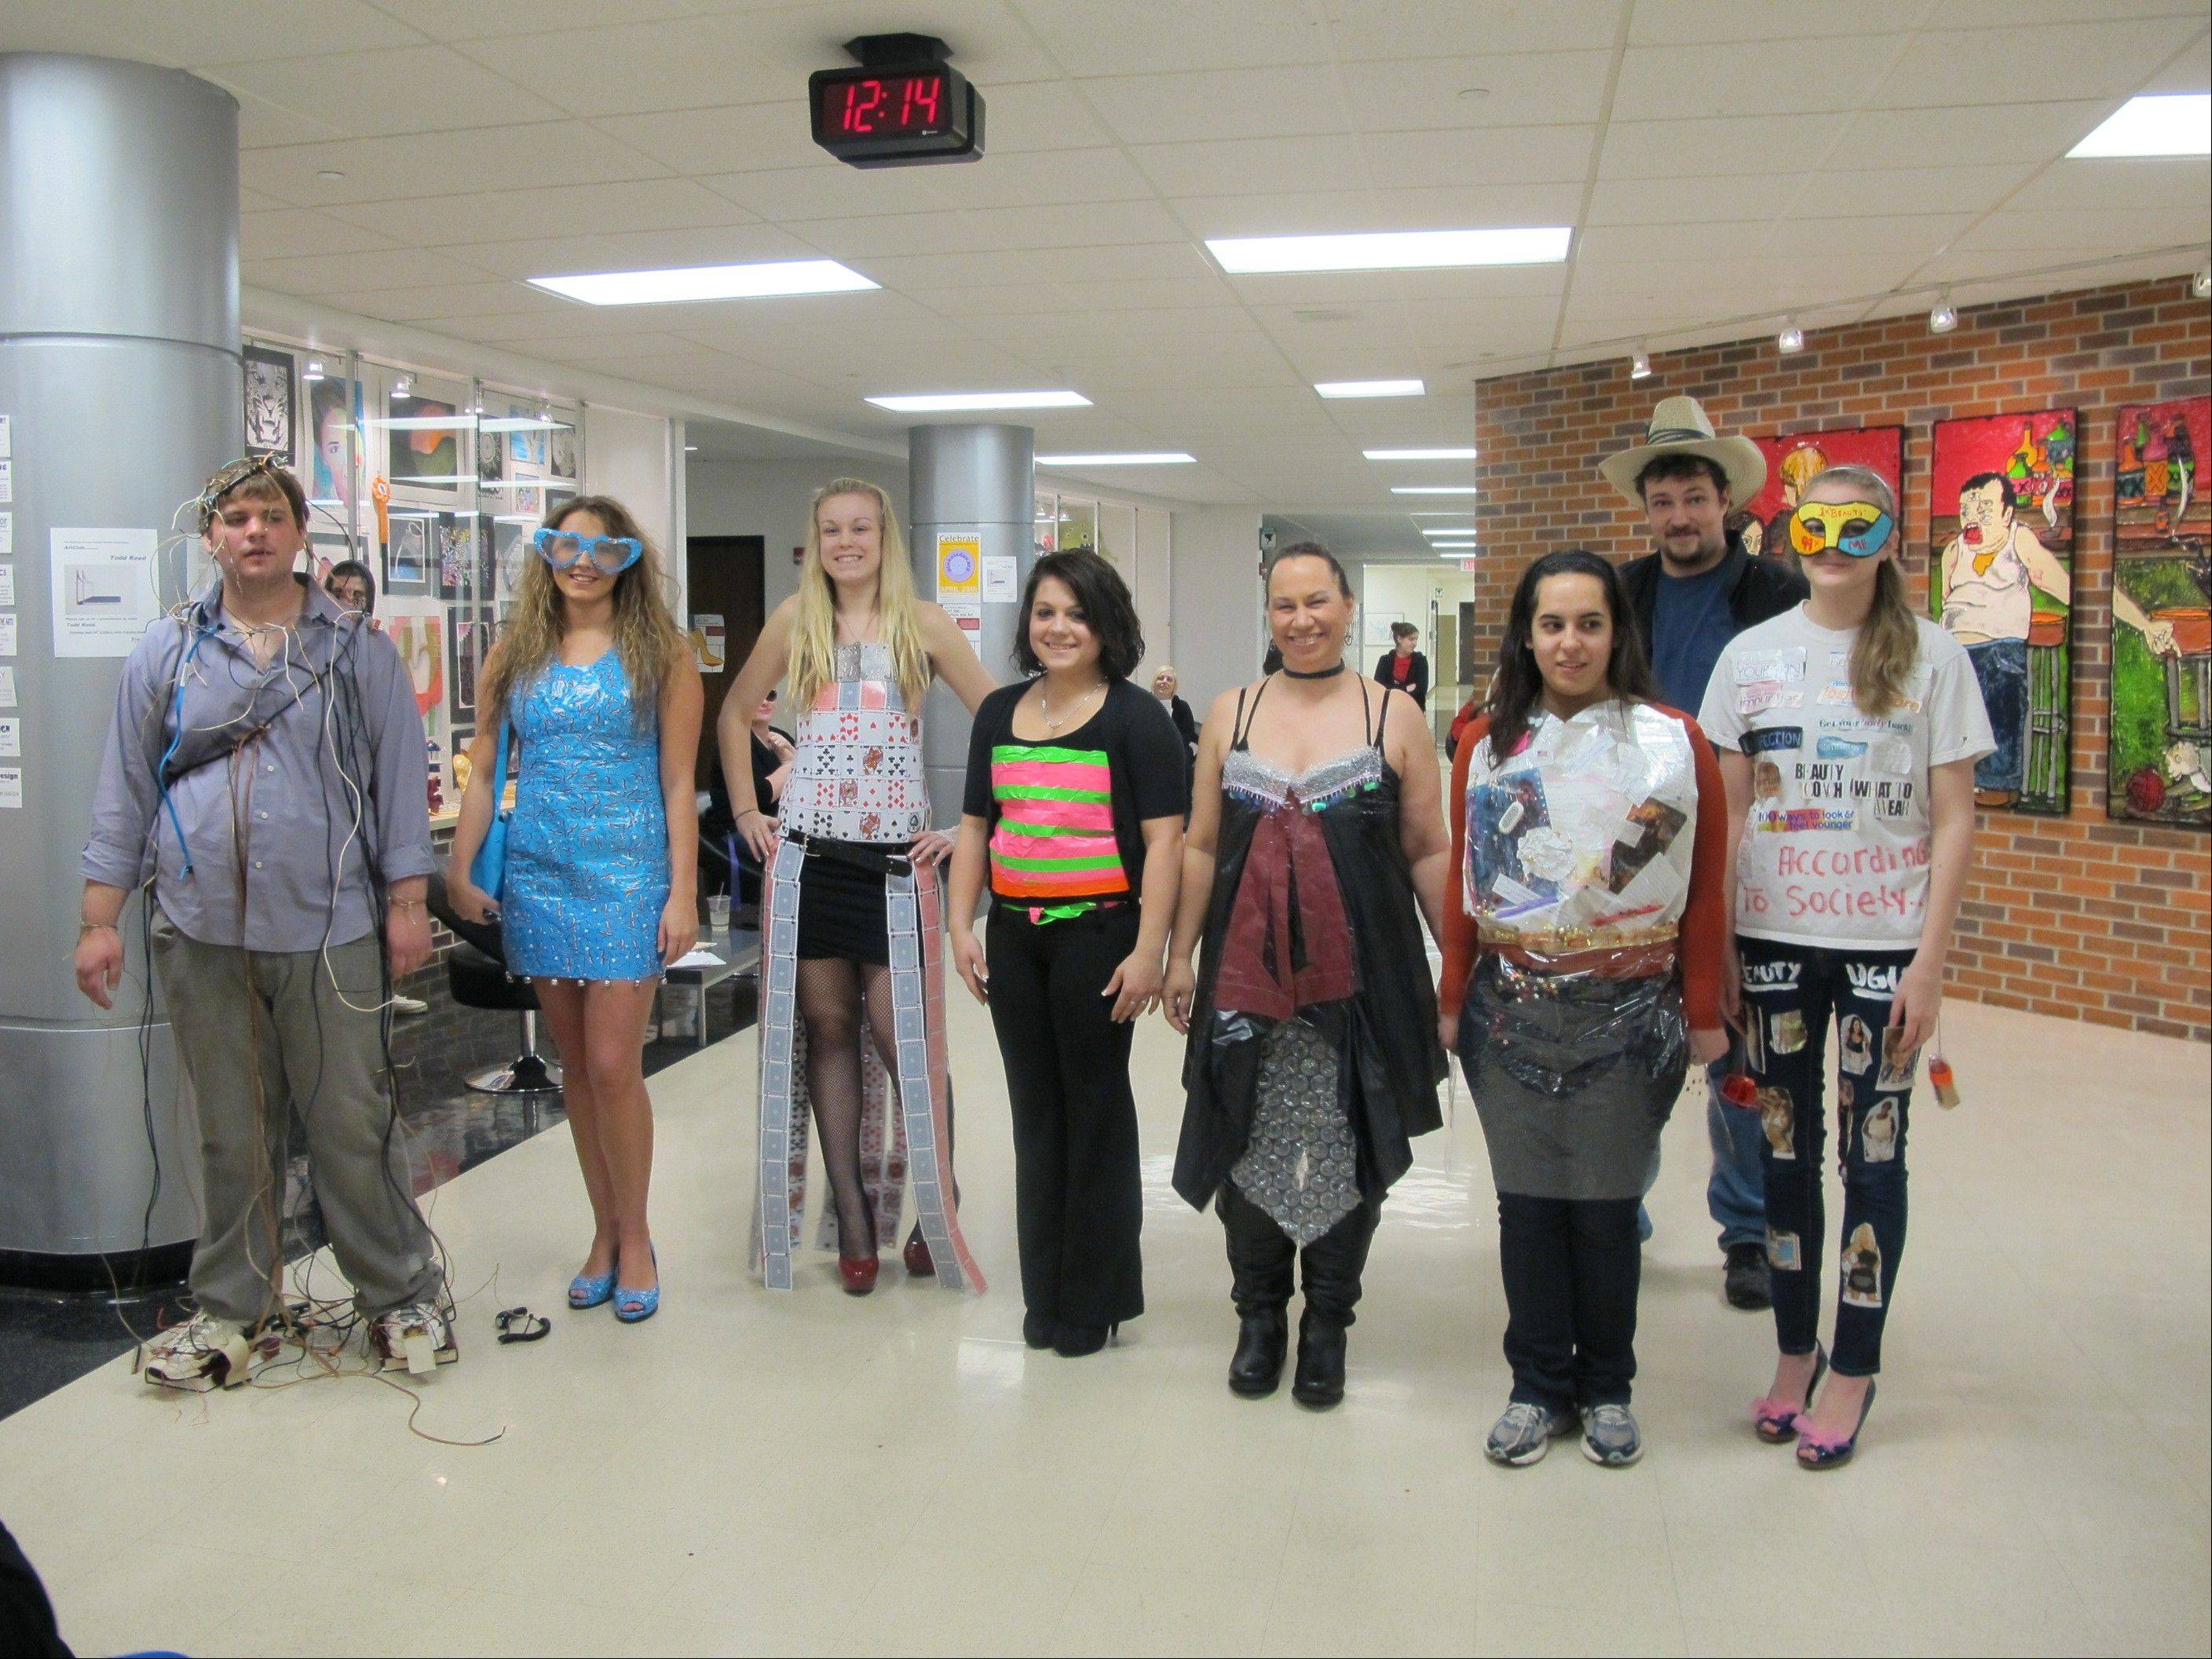 MCC students taking part in an unusual art/engineering project are, from left, Sean Myatt of Wonder Lake, Jessica Myers of Johnsburg, Cassandra Laing of Wonder Lake, Samantha Falco of Crystal Lake, Michelle Nowland and Rachel Campo, both of McHenry, Alex Saputo of Crystal Lake, and Jennifer Bochenek of Lake in the Hills.